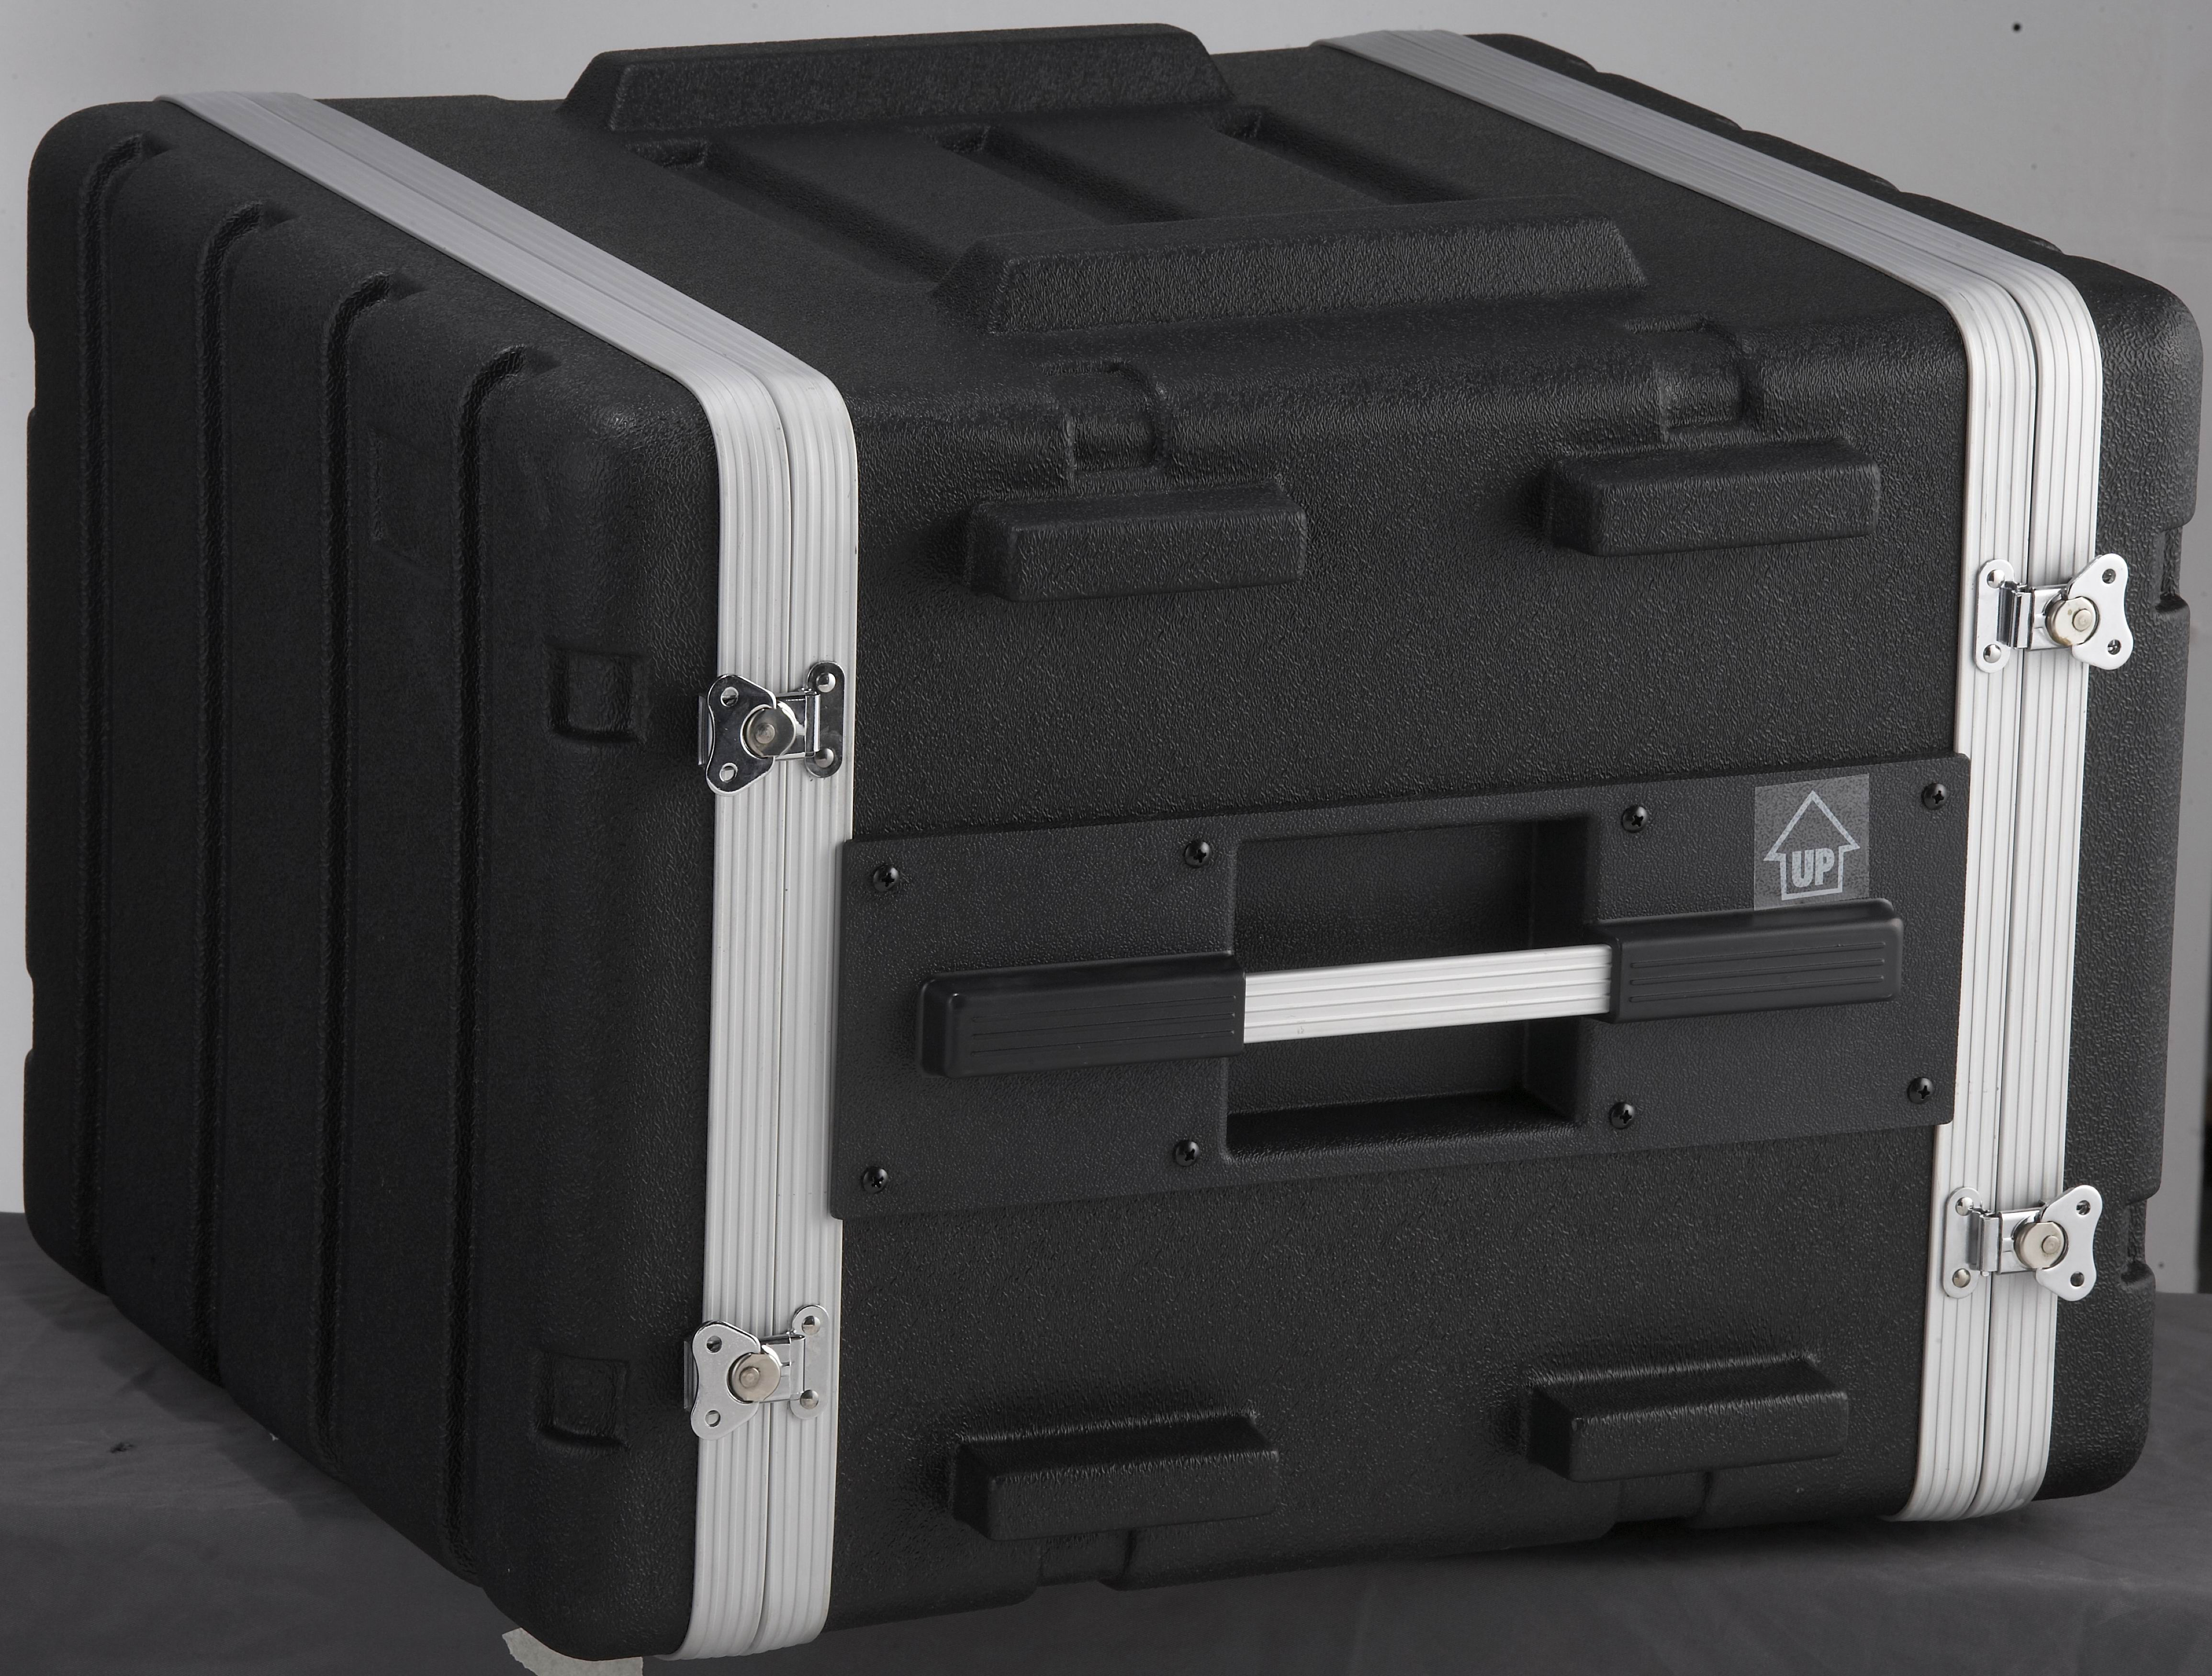 ABS Standard 8U Rack Case